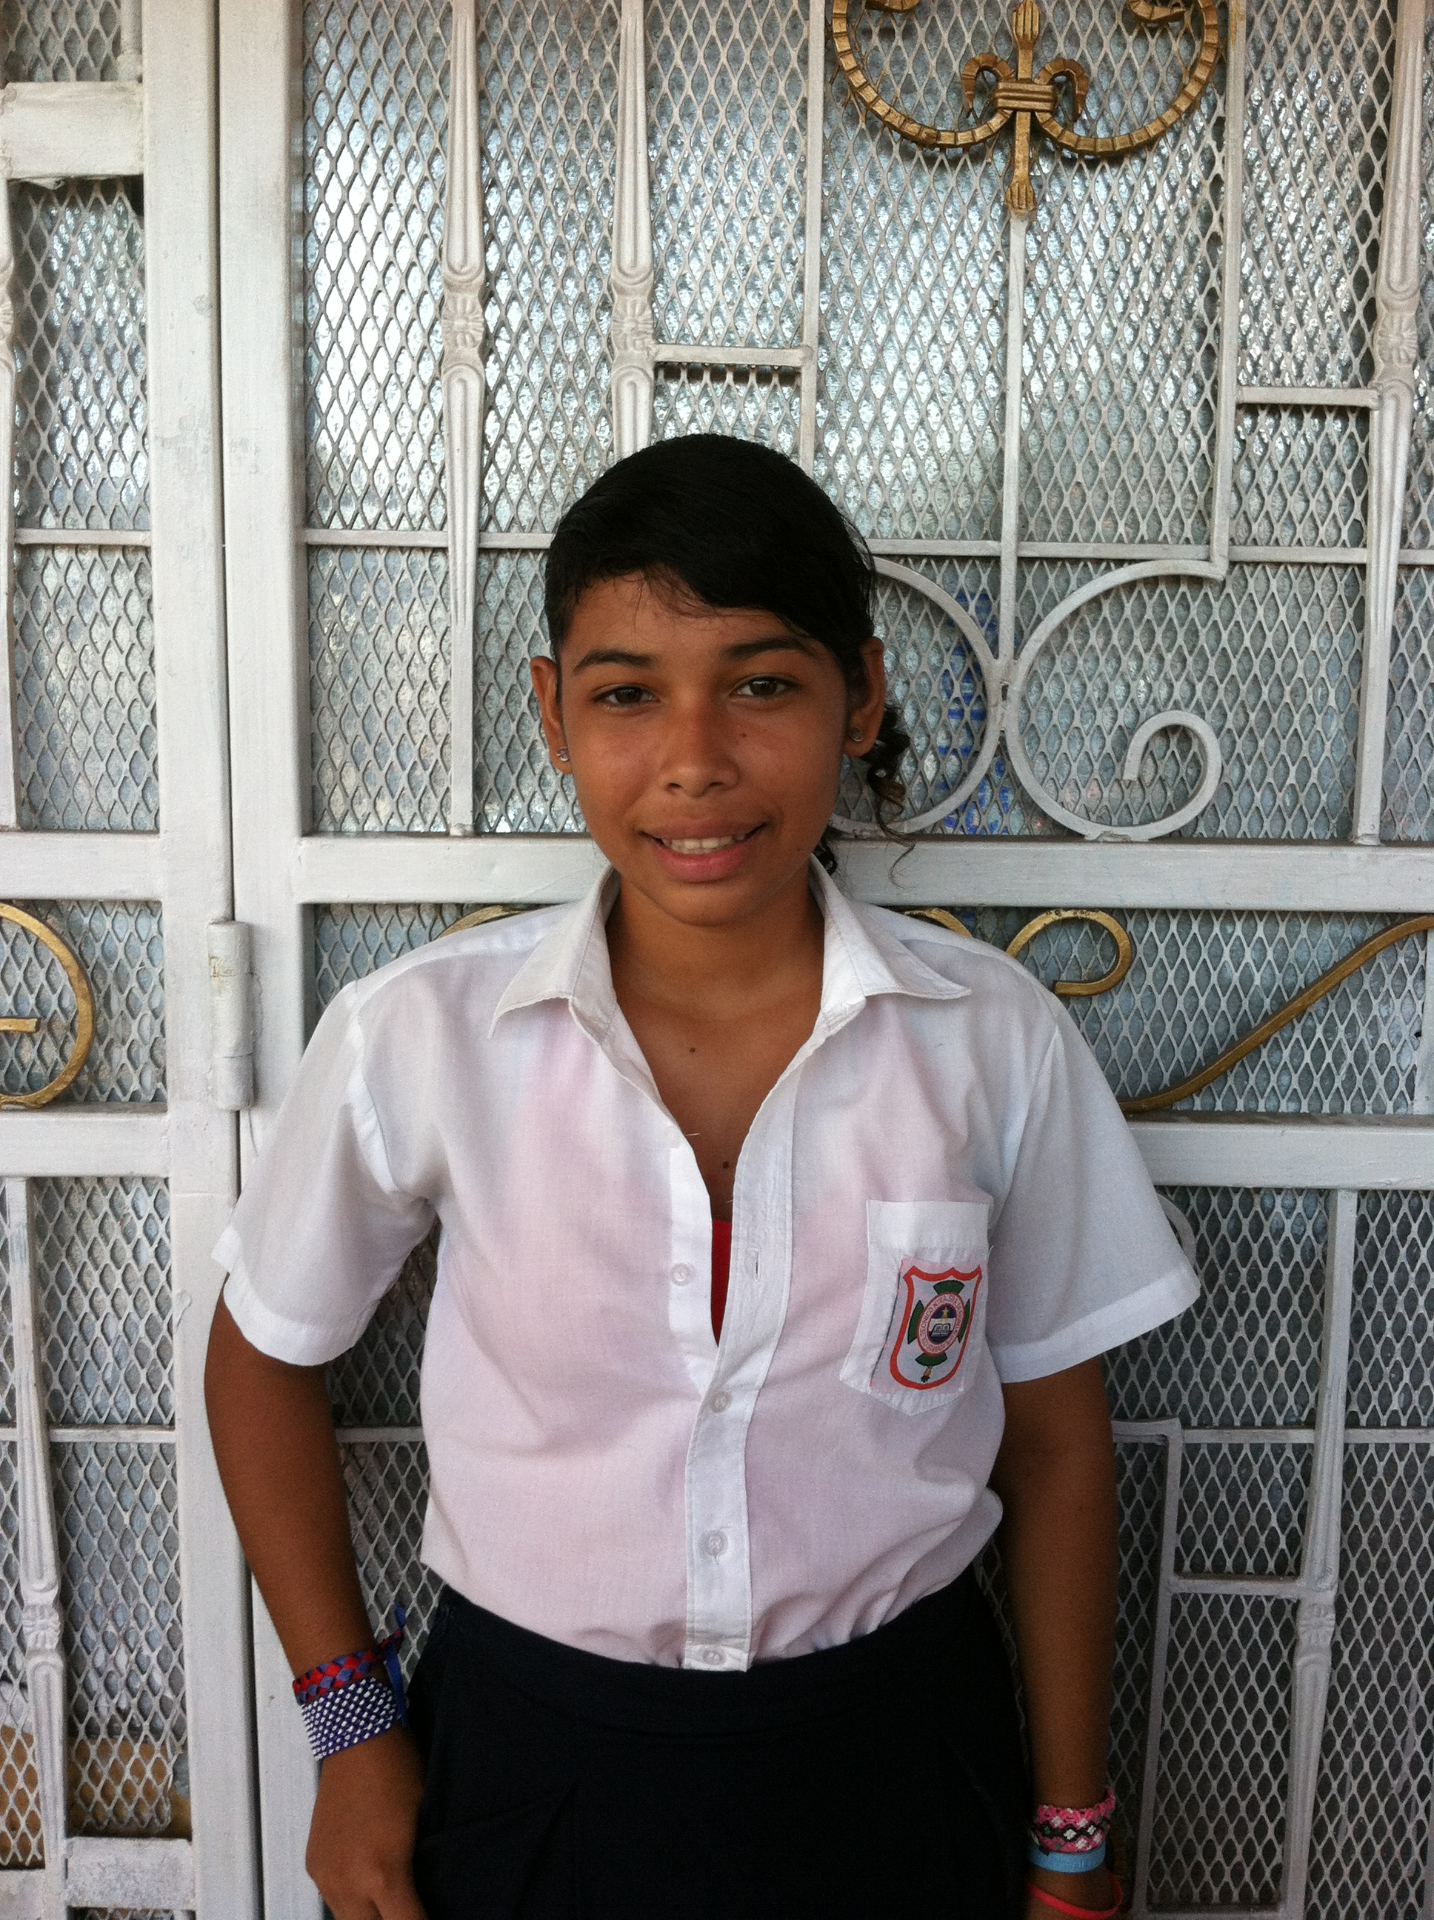 Soccer Without Borders | Adriana, 14 years old